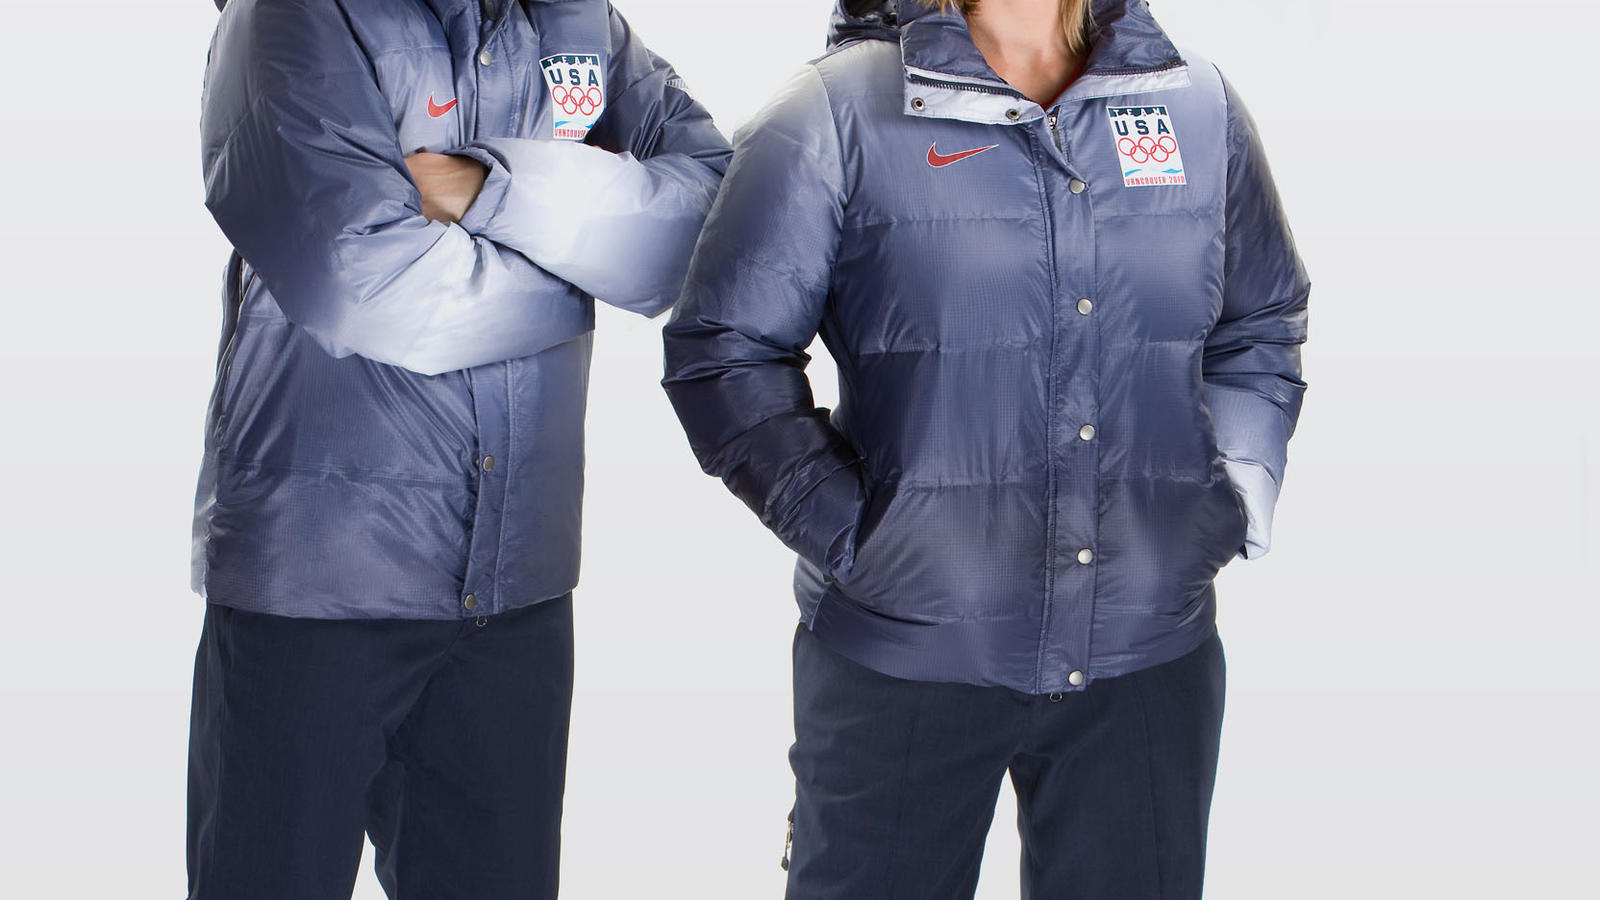 d3b1f3089b6 Team USA unveils medal stand looks - Nike News